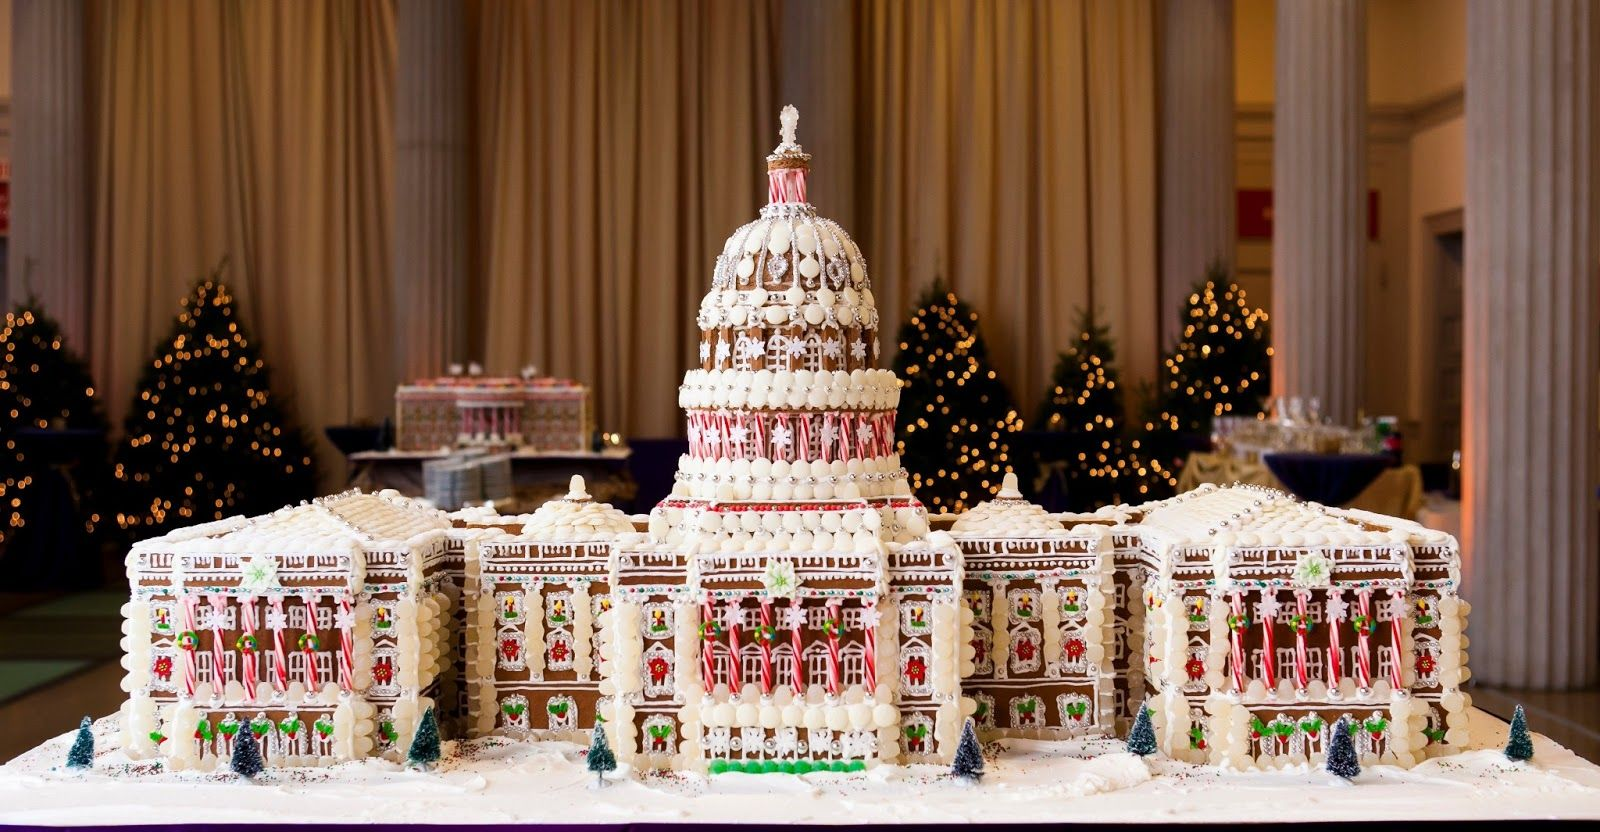 This amazing gingerbread Capitol is from Windows Catering Company